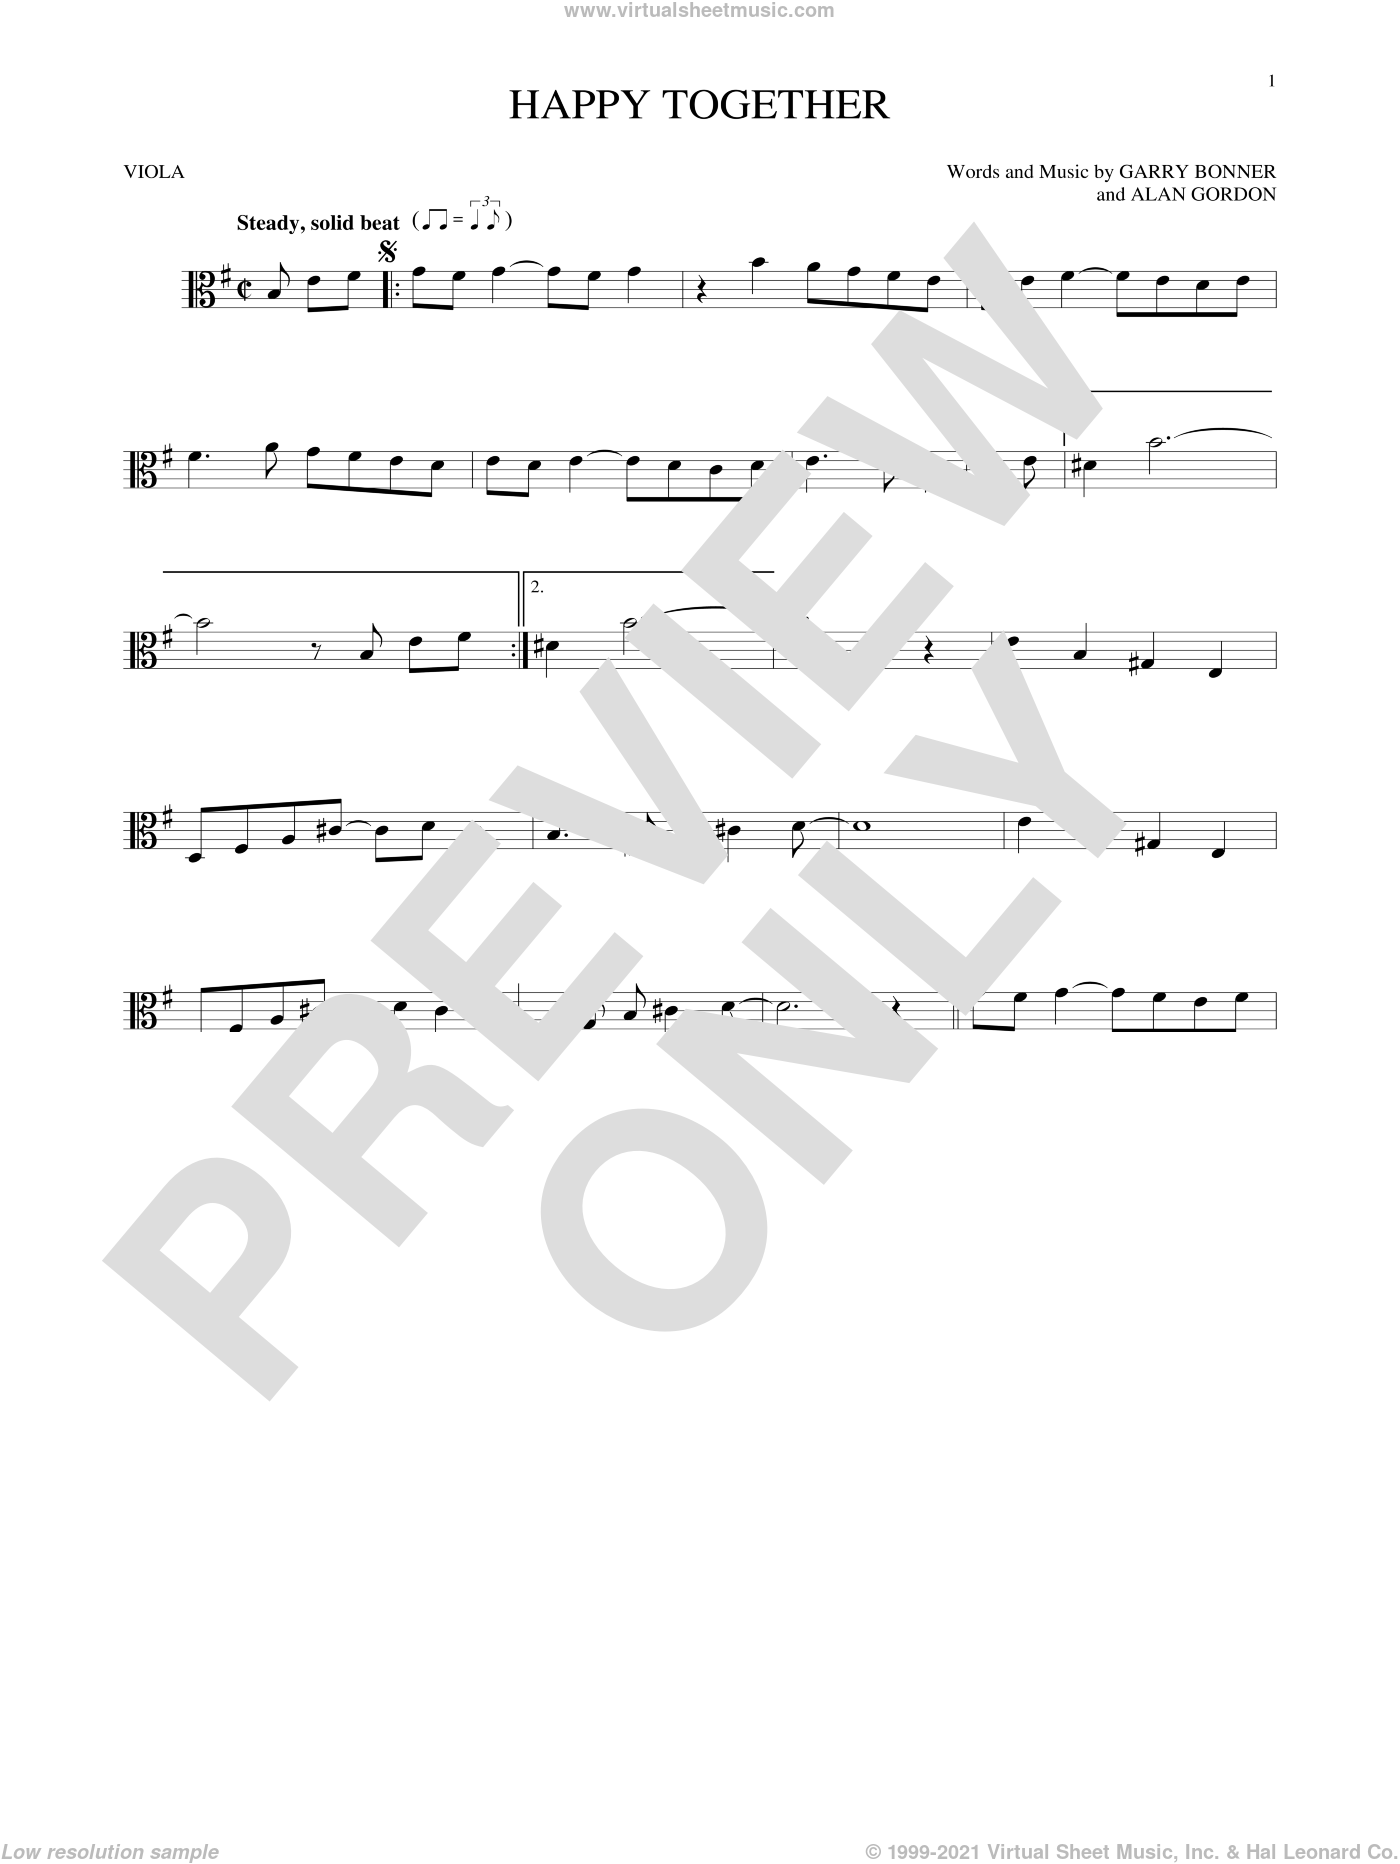 Happy Together sheet music for viola solo by The Turtles, Alan Gordon and Garry Bonner, intermediate skill level